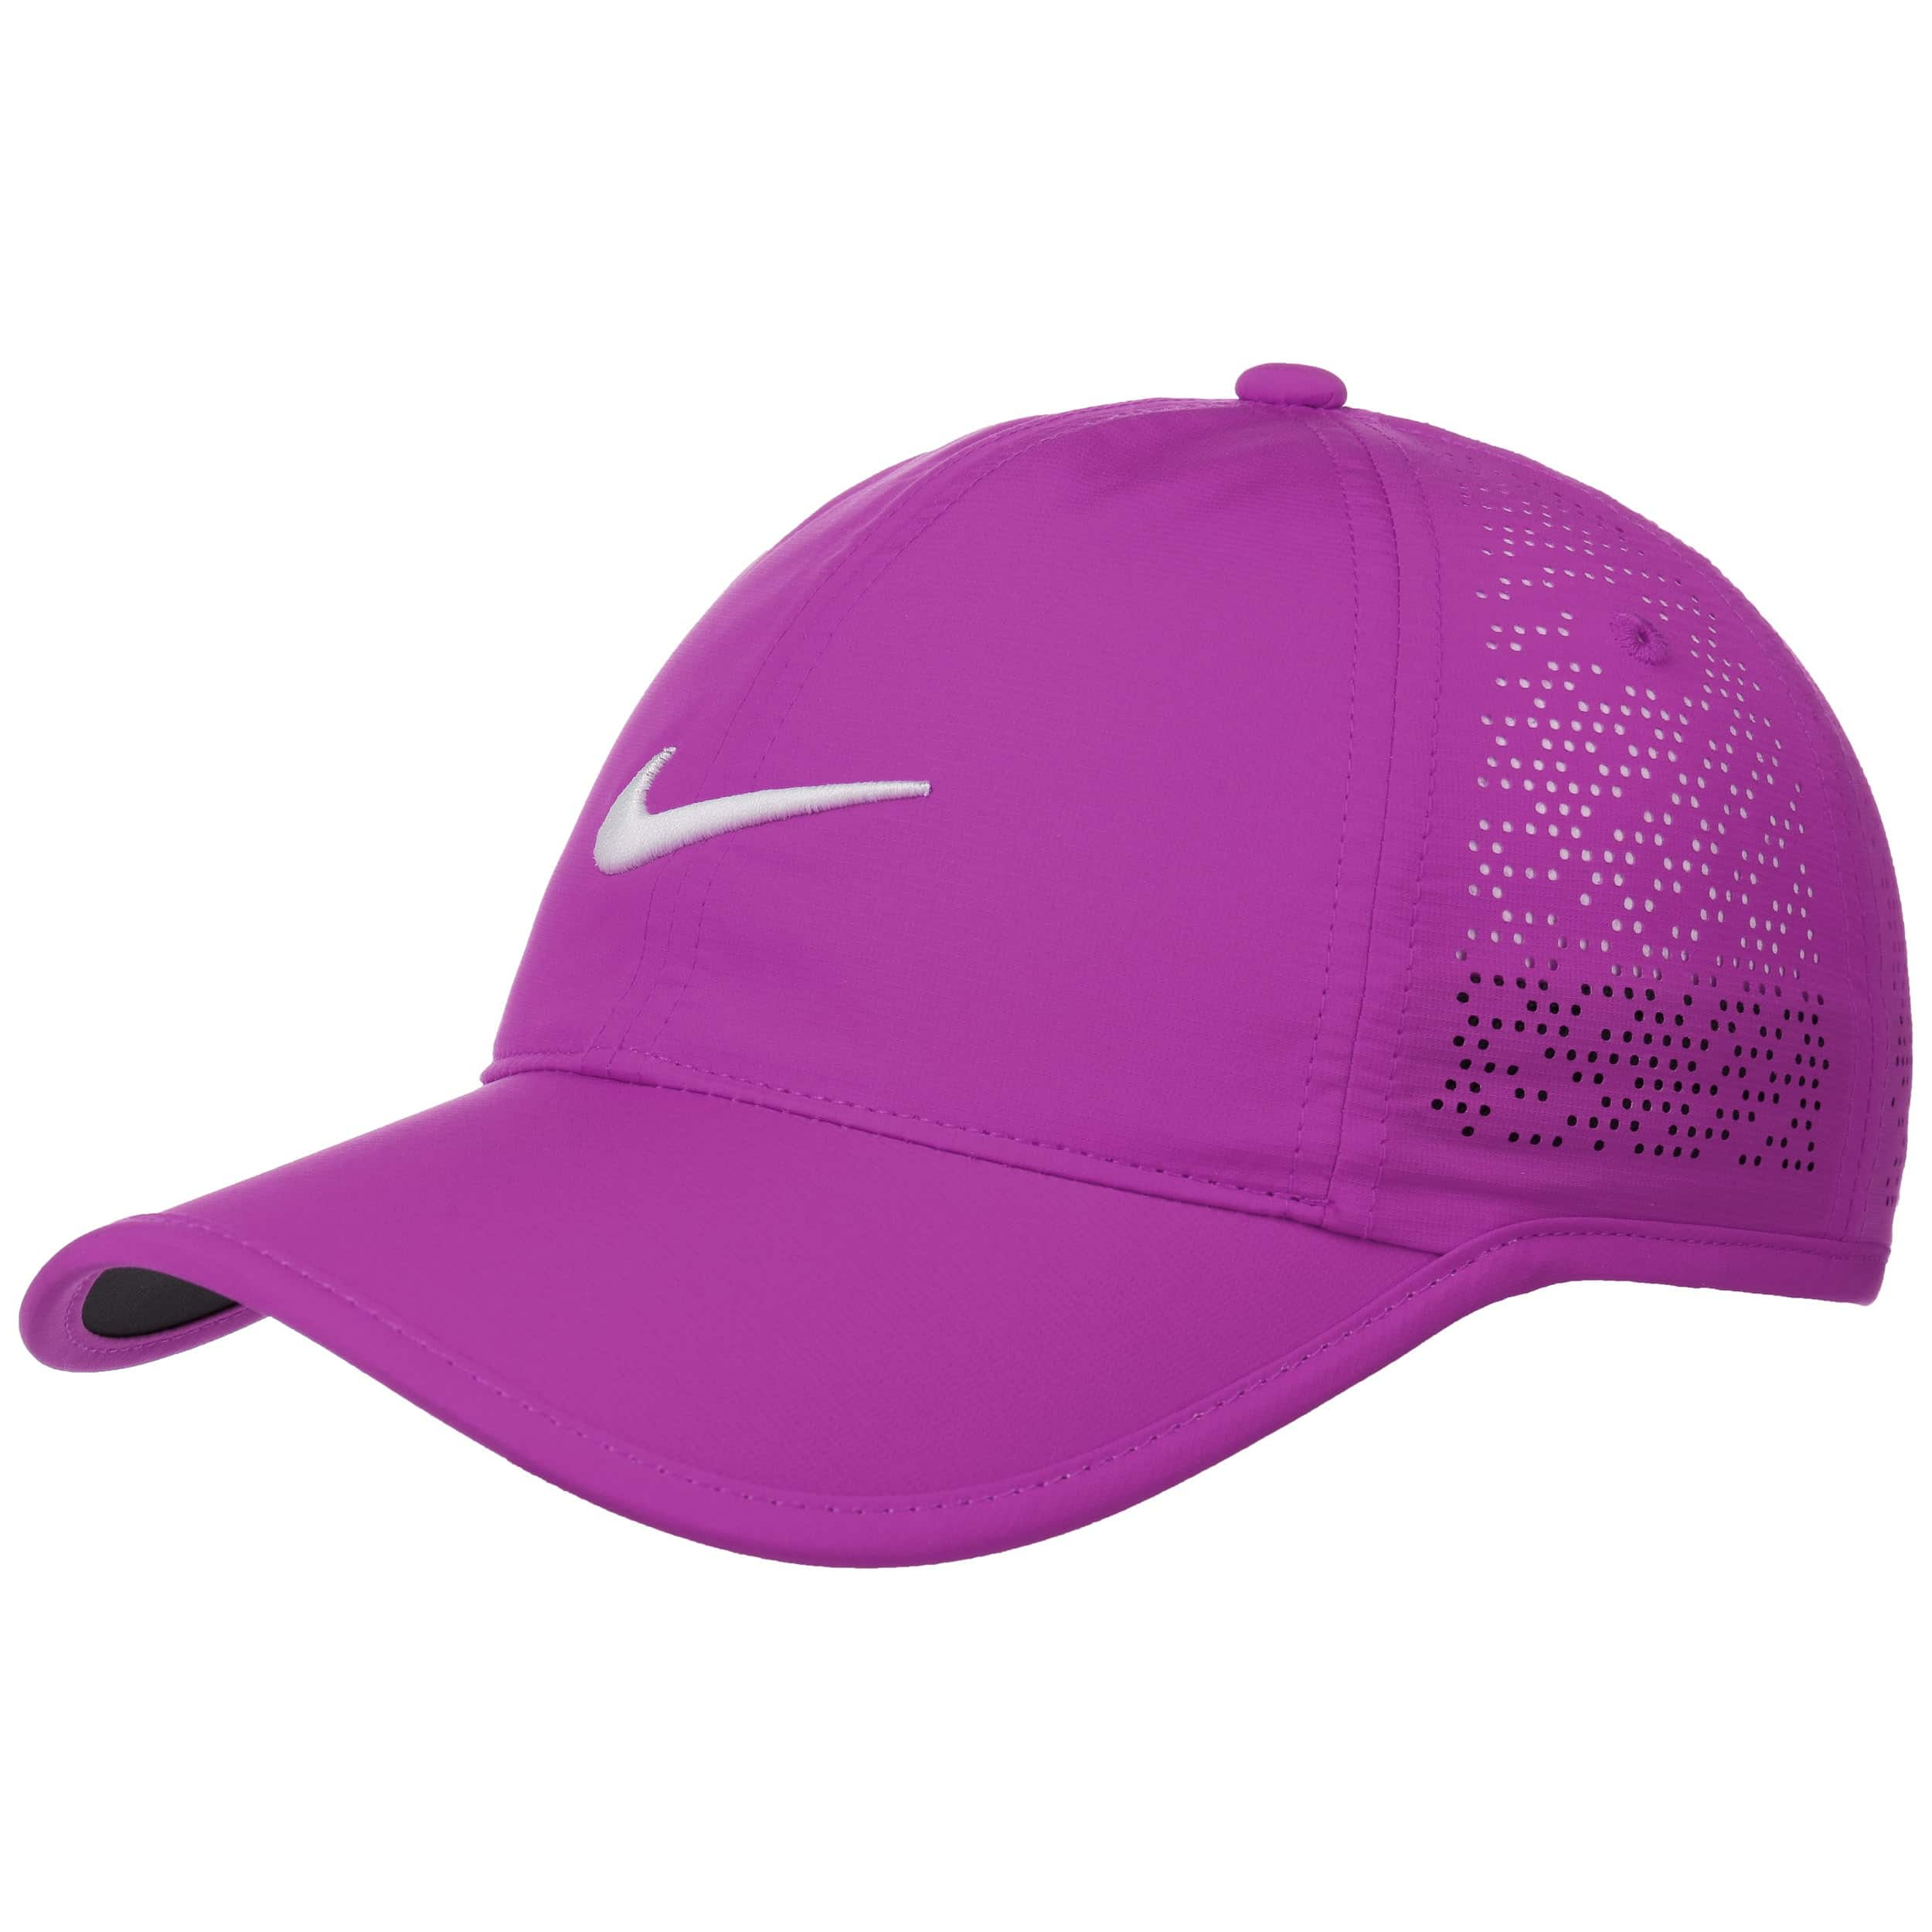 413a9e6a40017 ... Swoosh Perforation Cap by Nike - purple 2 ...